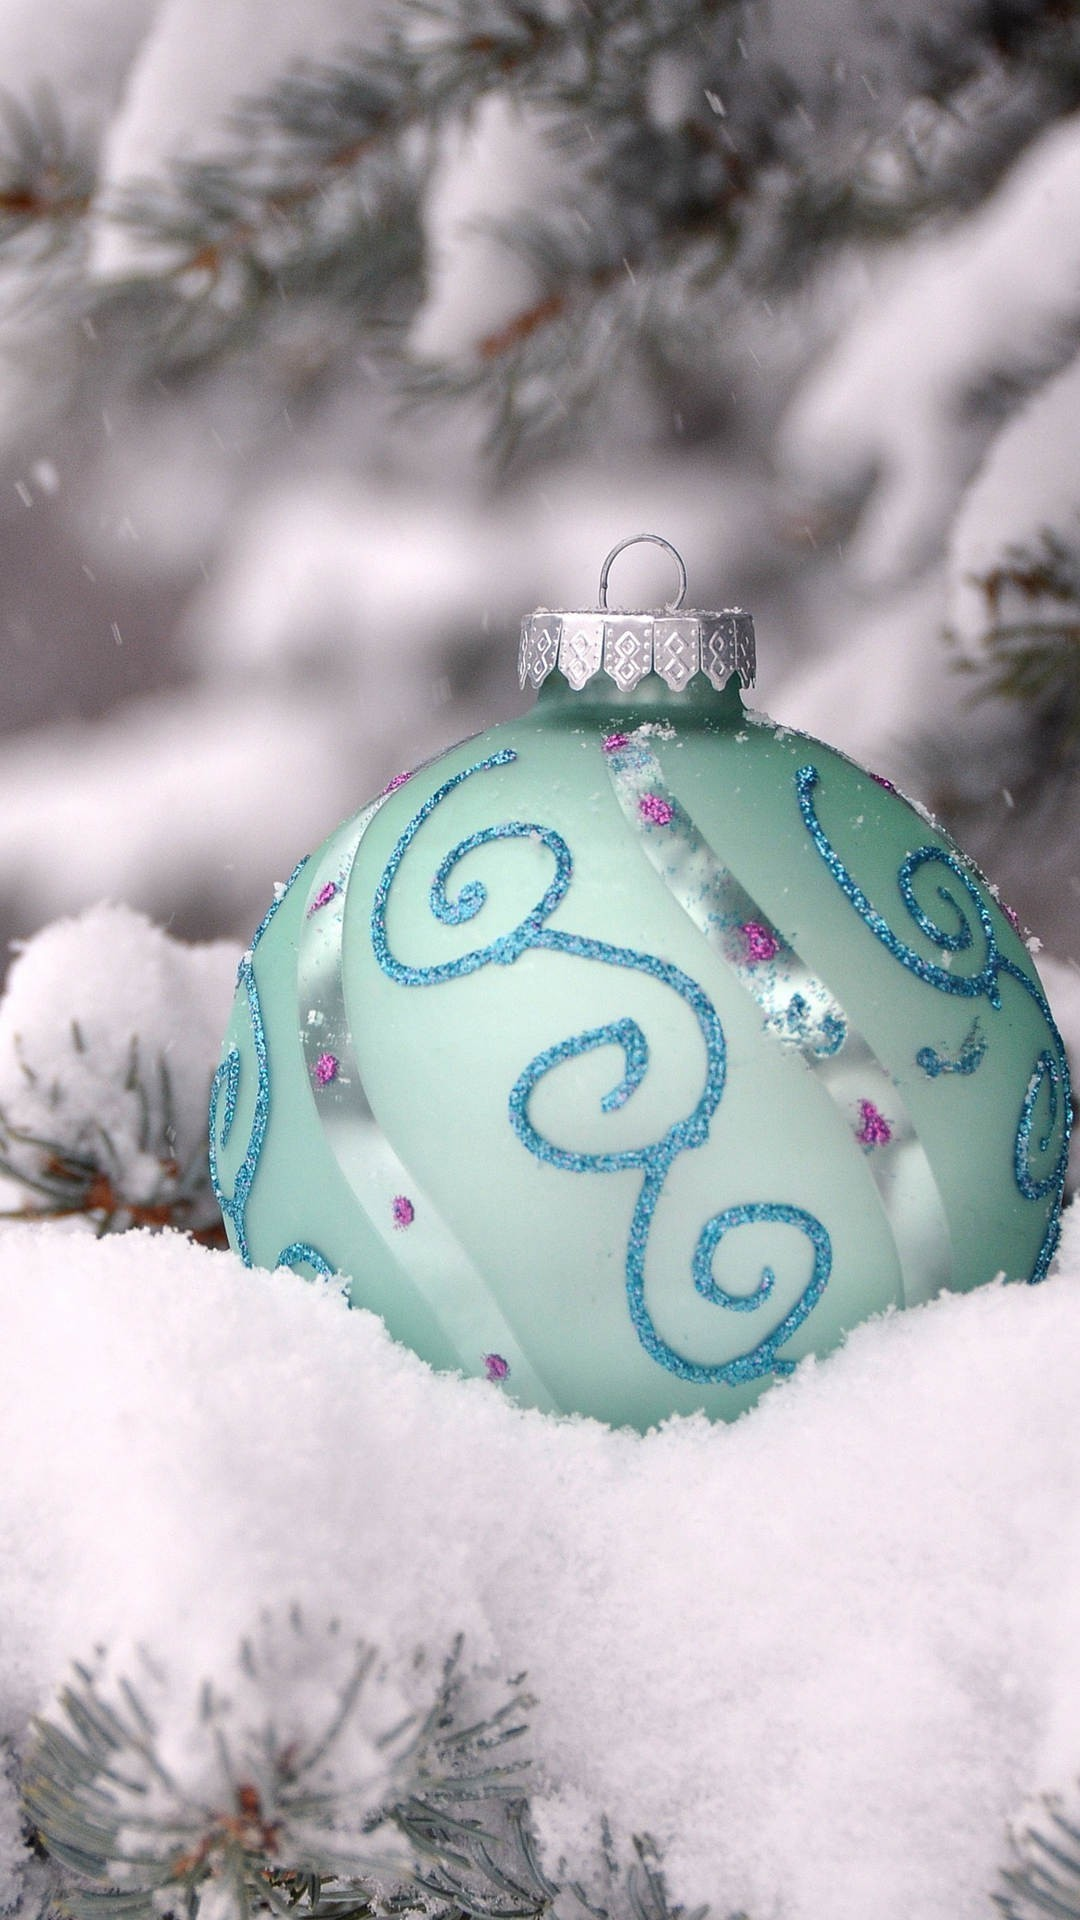 Christmas Tree Snow Wallpaper (73+ images)